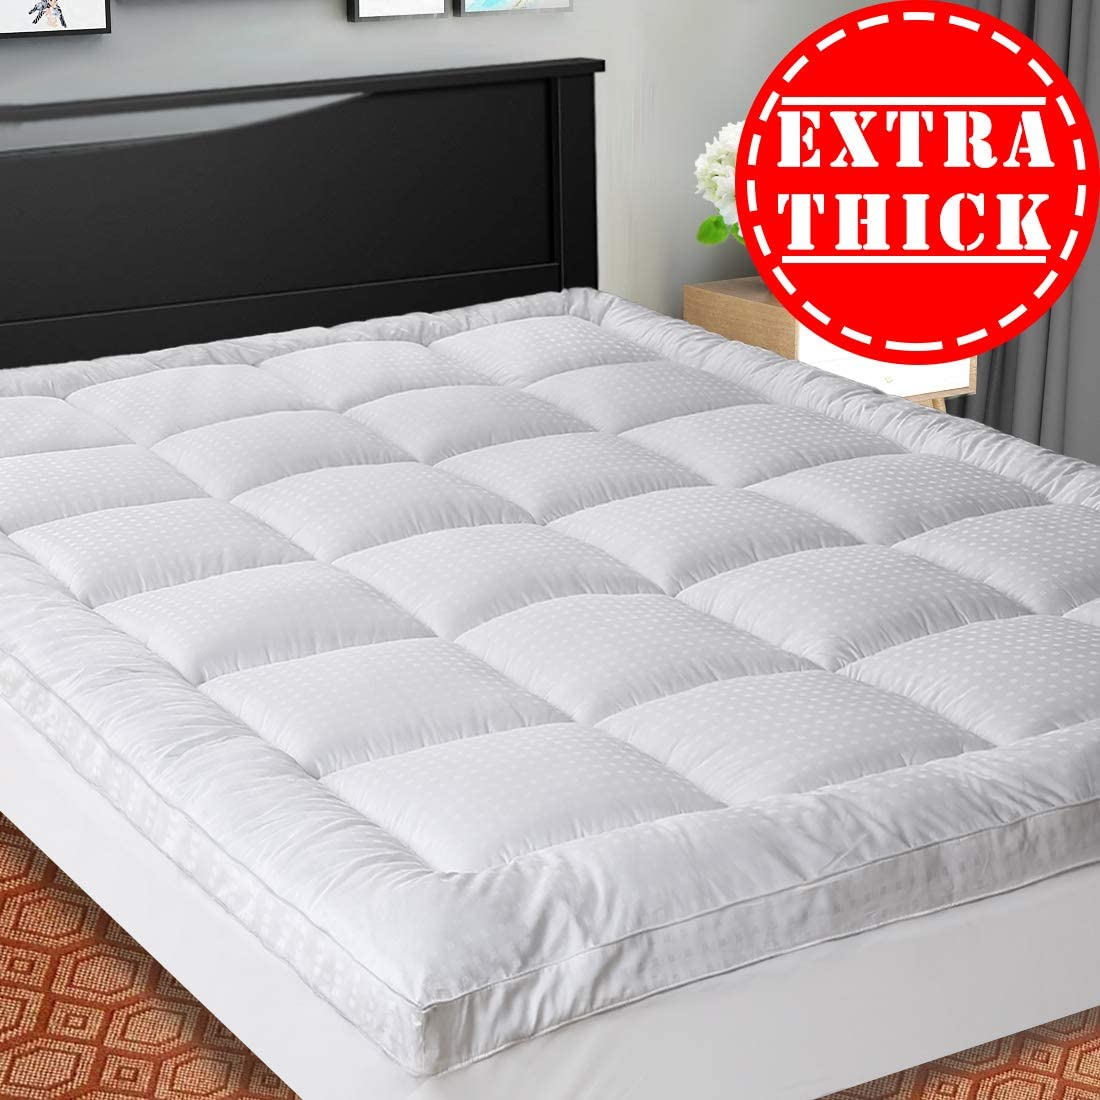 SOPAT Breathable Extra Thick Mattress Topper